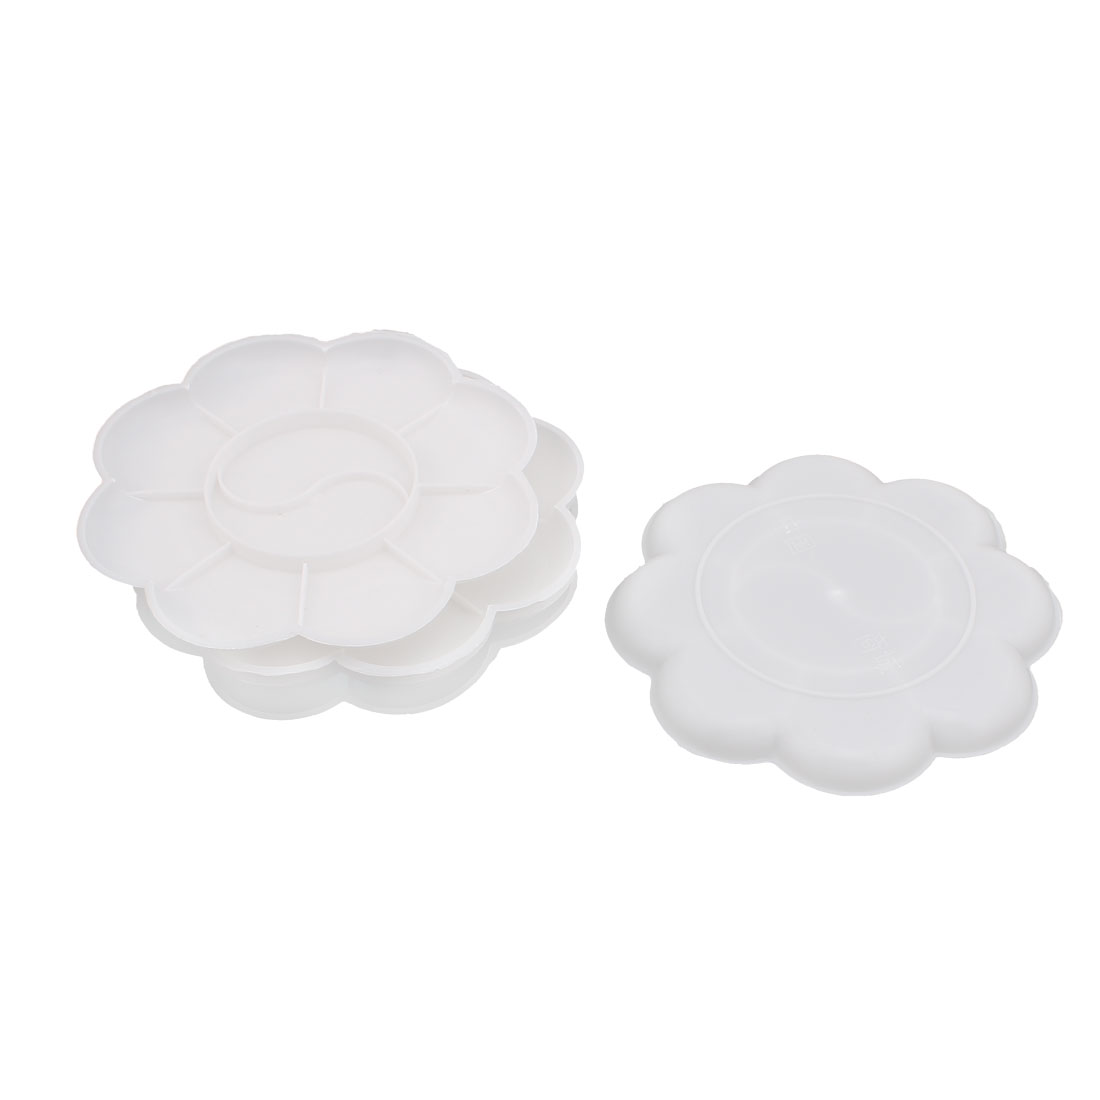 Plastic 10 Well Artist Paint Painting Mixing Palette Plate Disk Trays 5pcs White